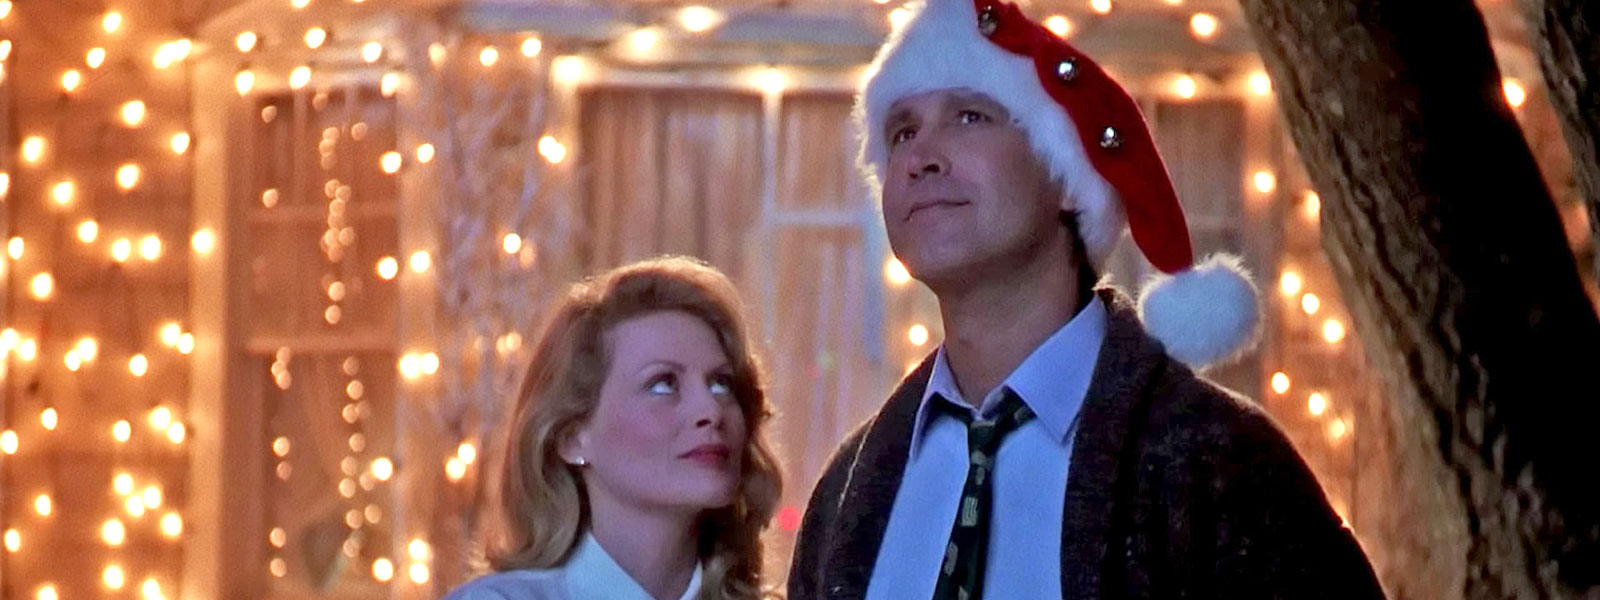 Image Result For A Good Family Christmas Movie